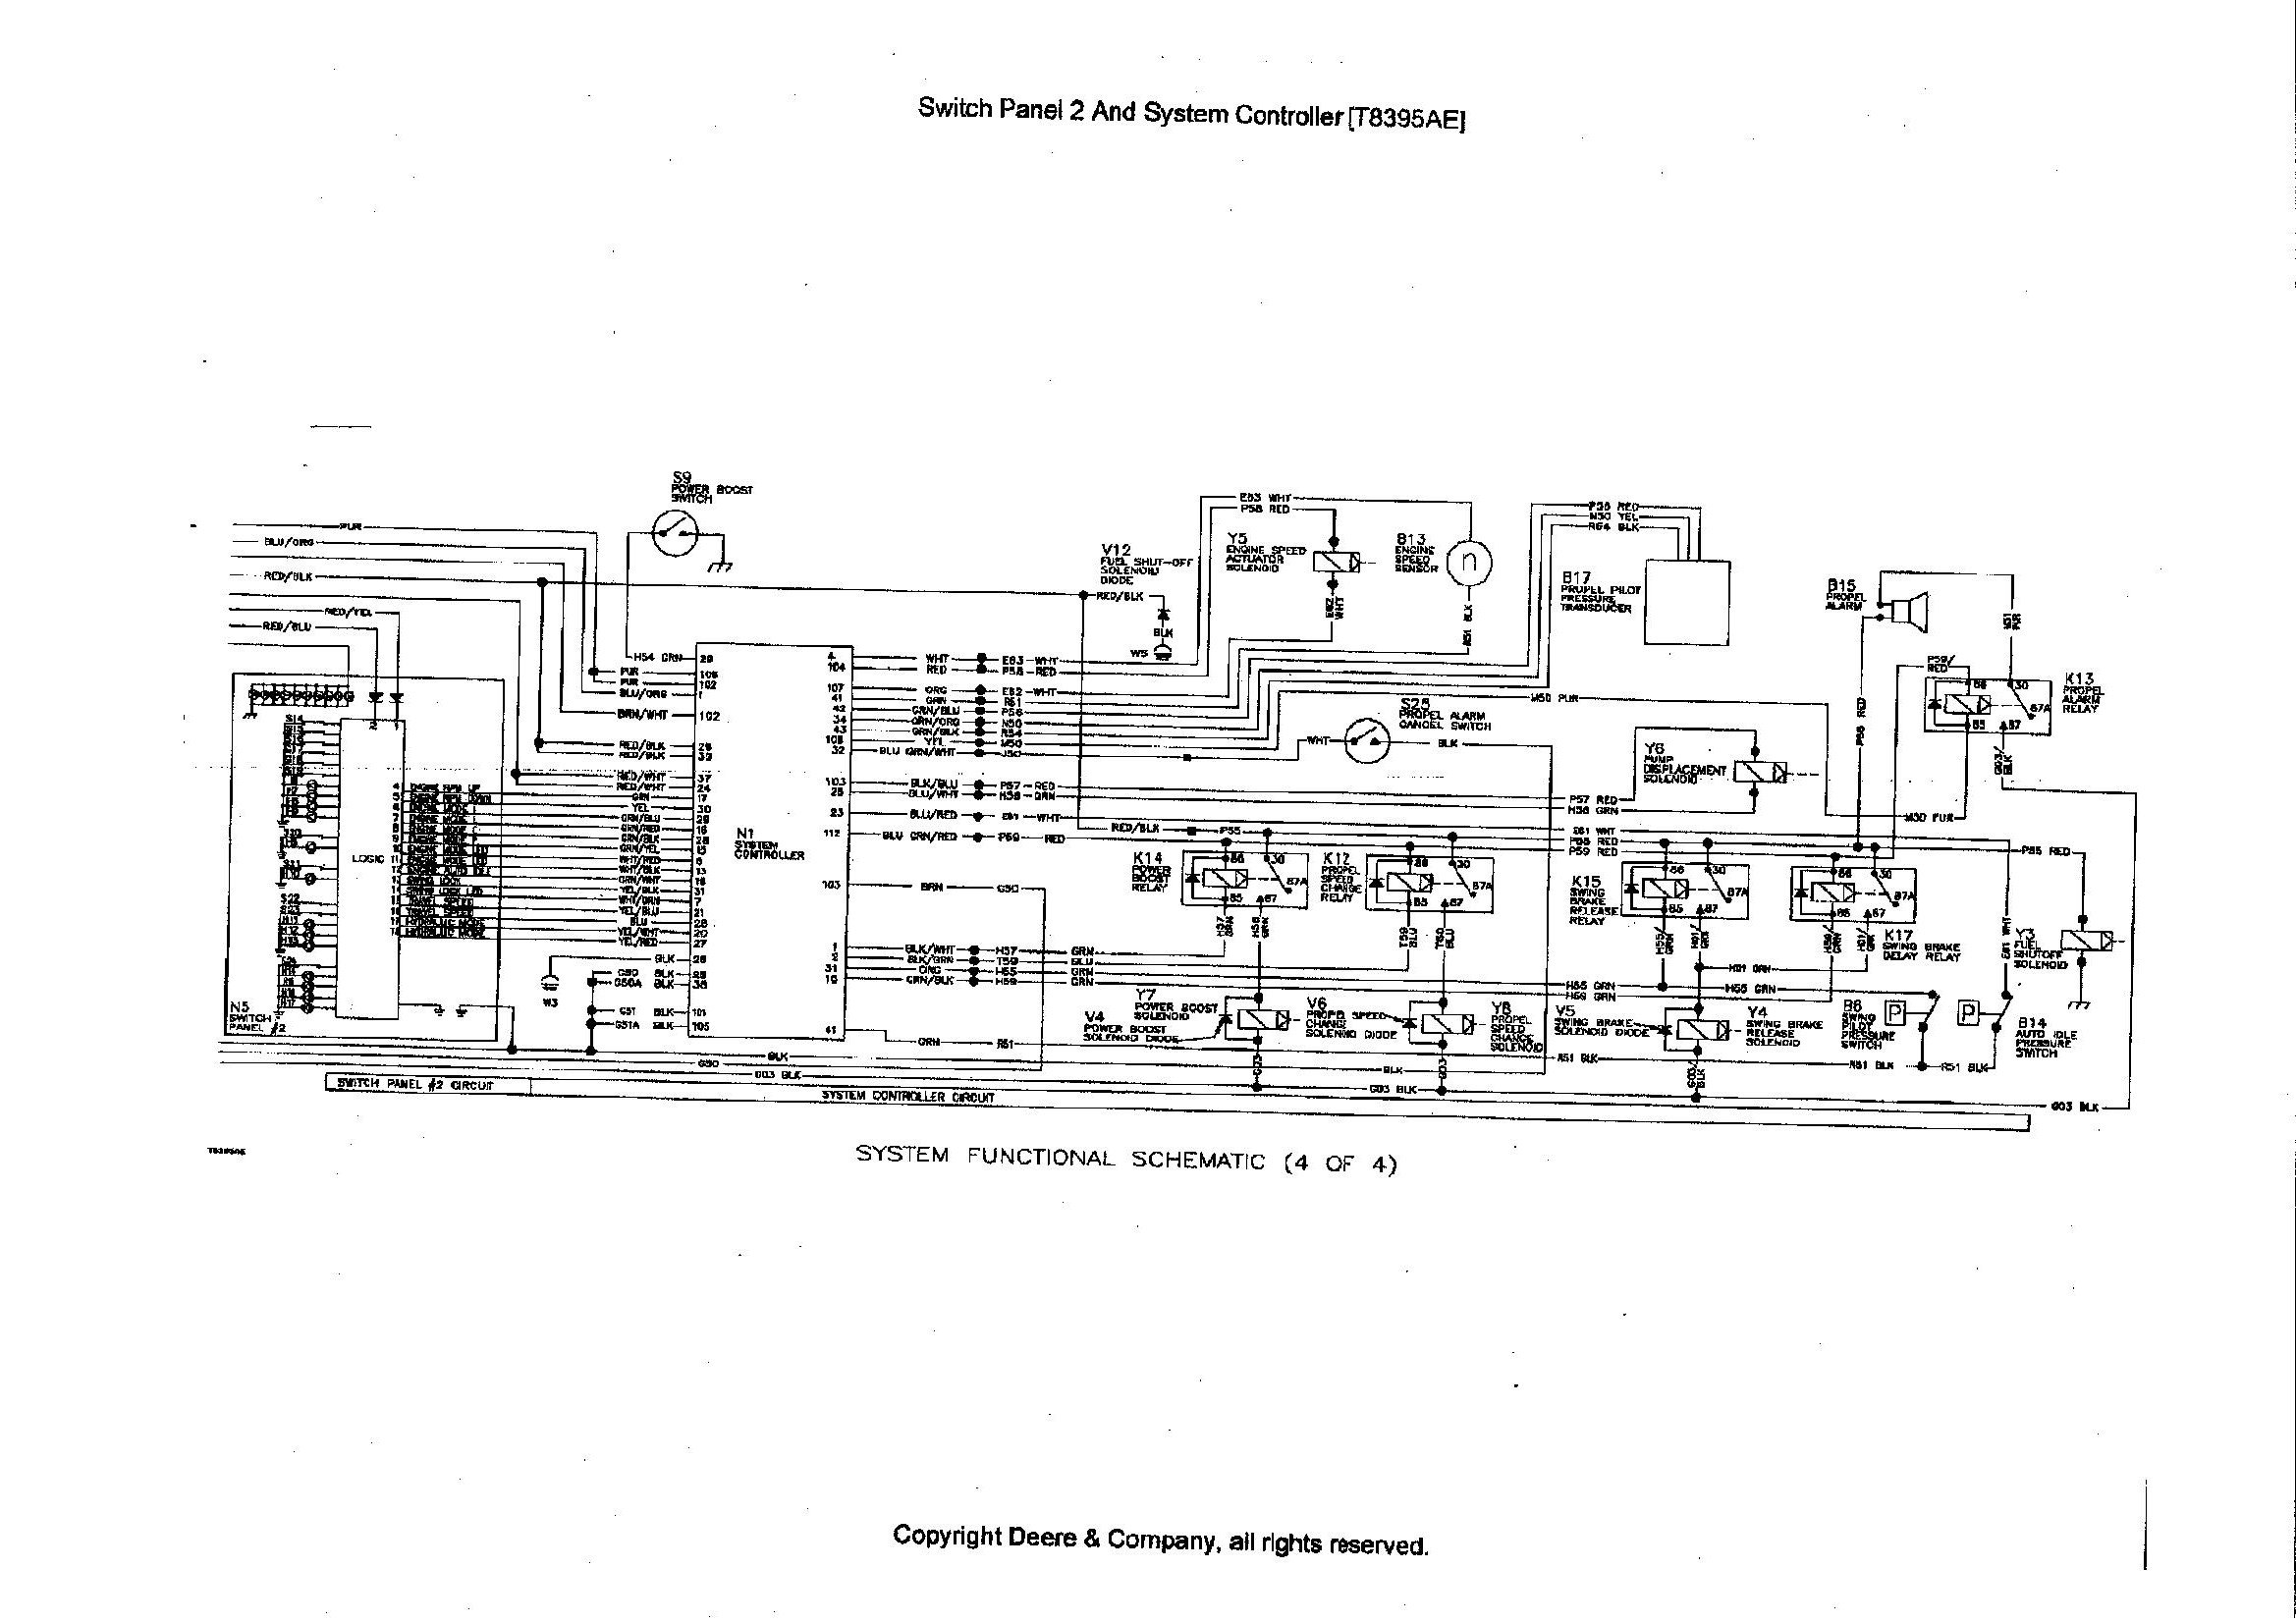 2012 09 05_041708_jd690e_lc_013 diagrams 600422 john deere 317 wiring schematic 317 tractor wiring diagram for john deere 318 at creativeand.co